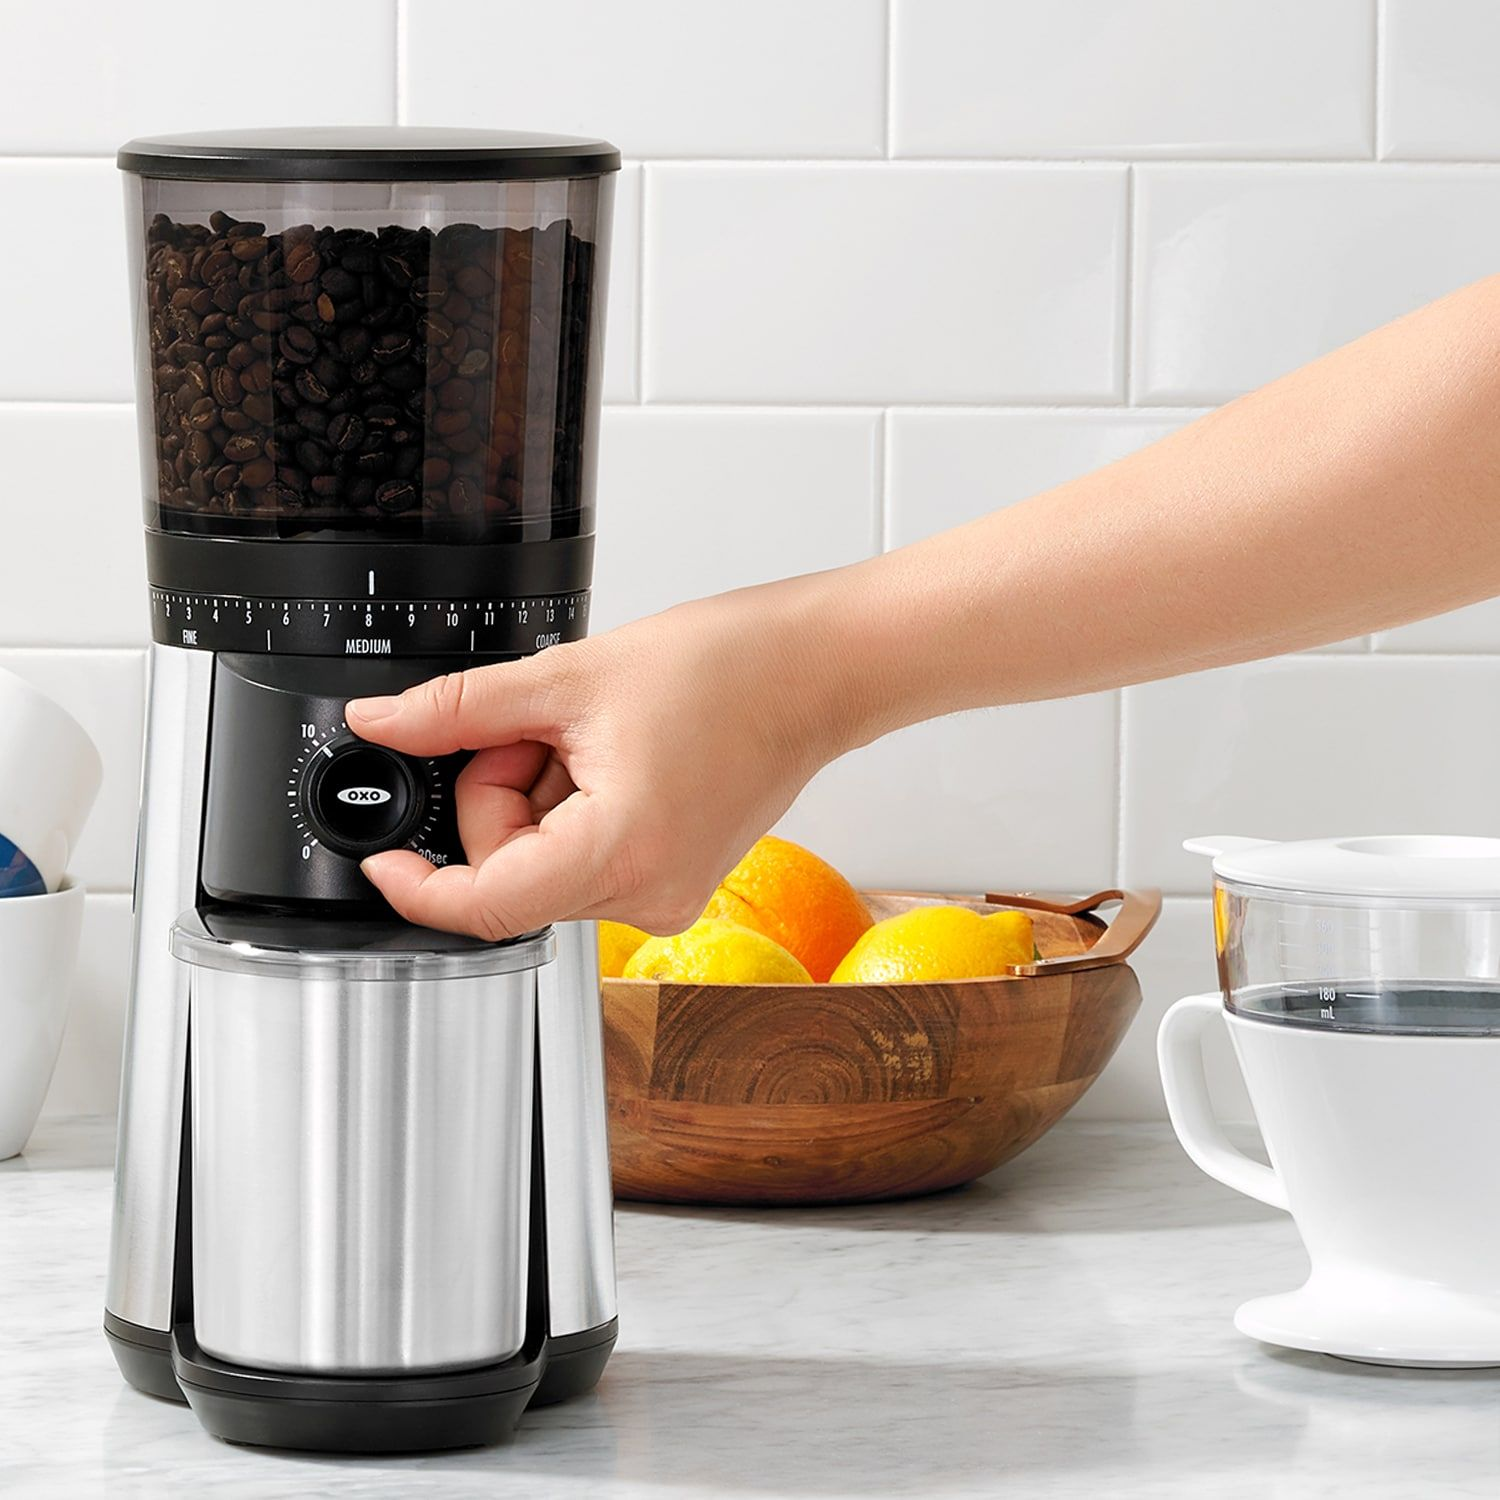 OXO Conical Burr Coffee Grinder Conical, OXO, Burr,